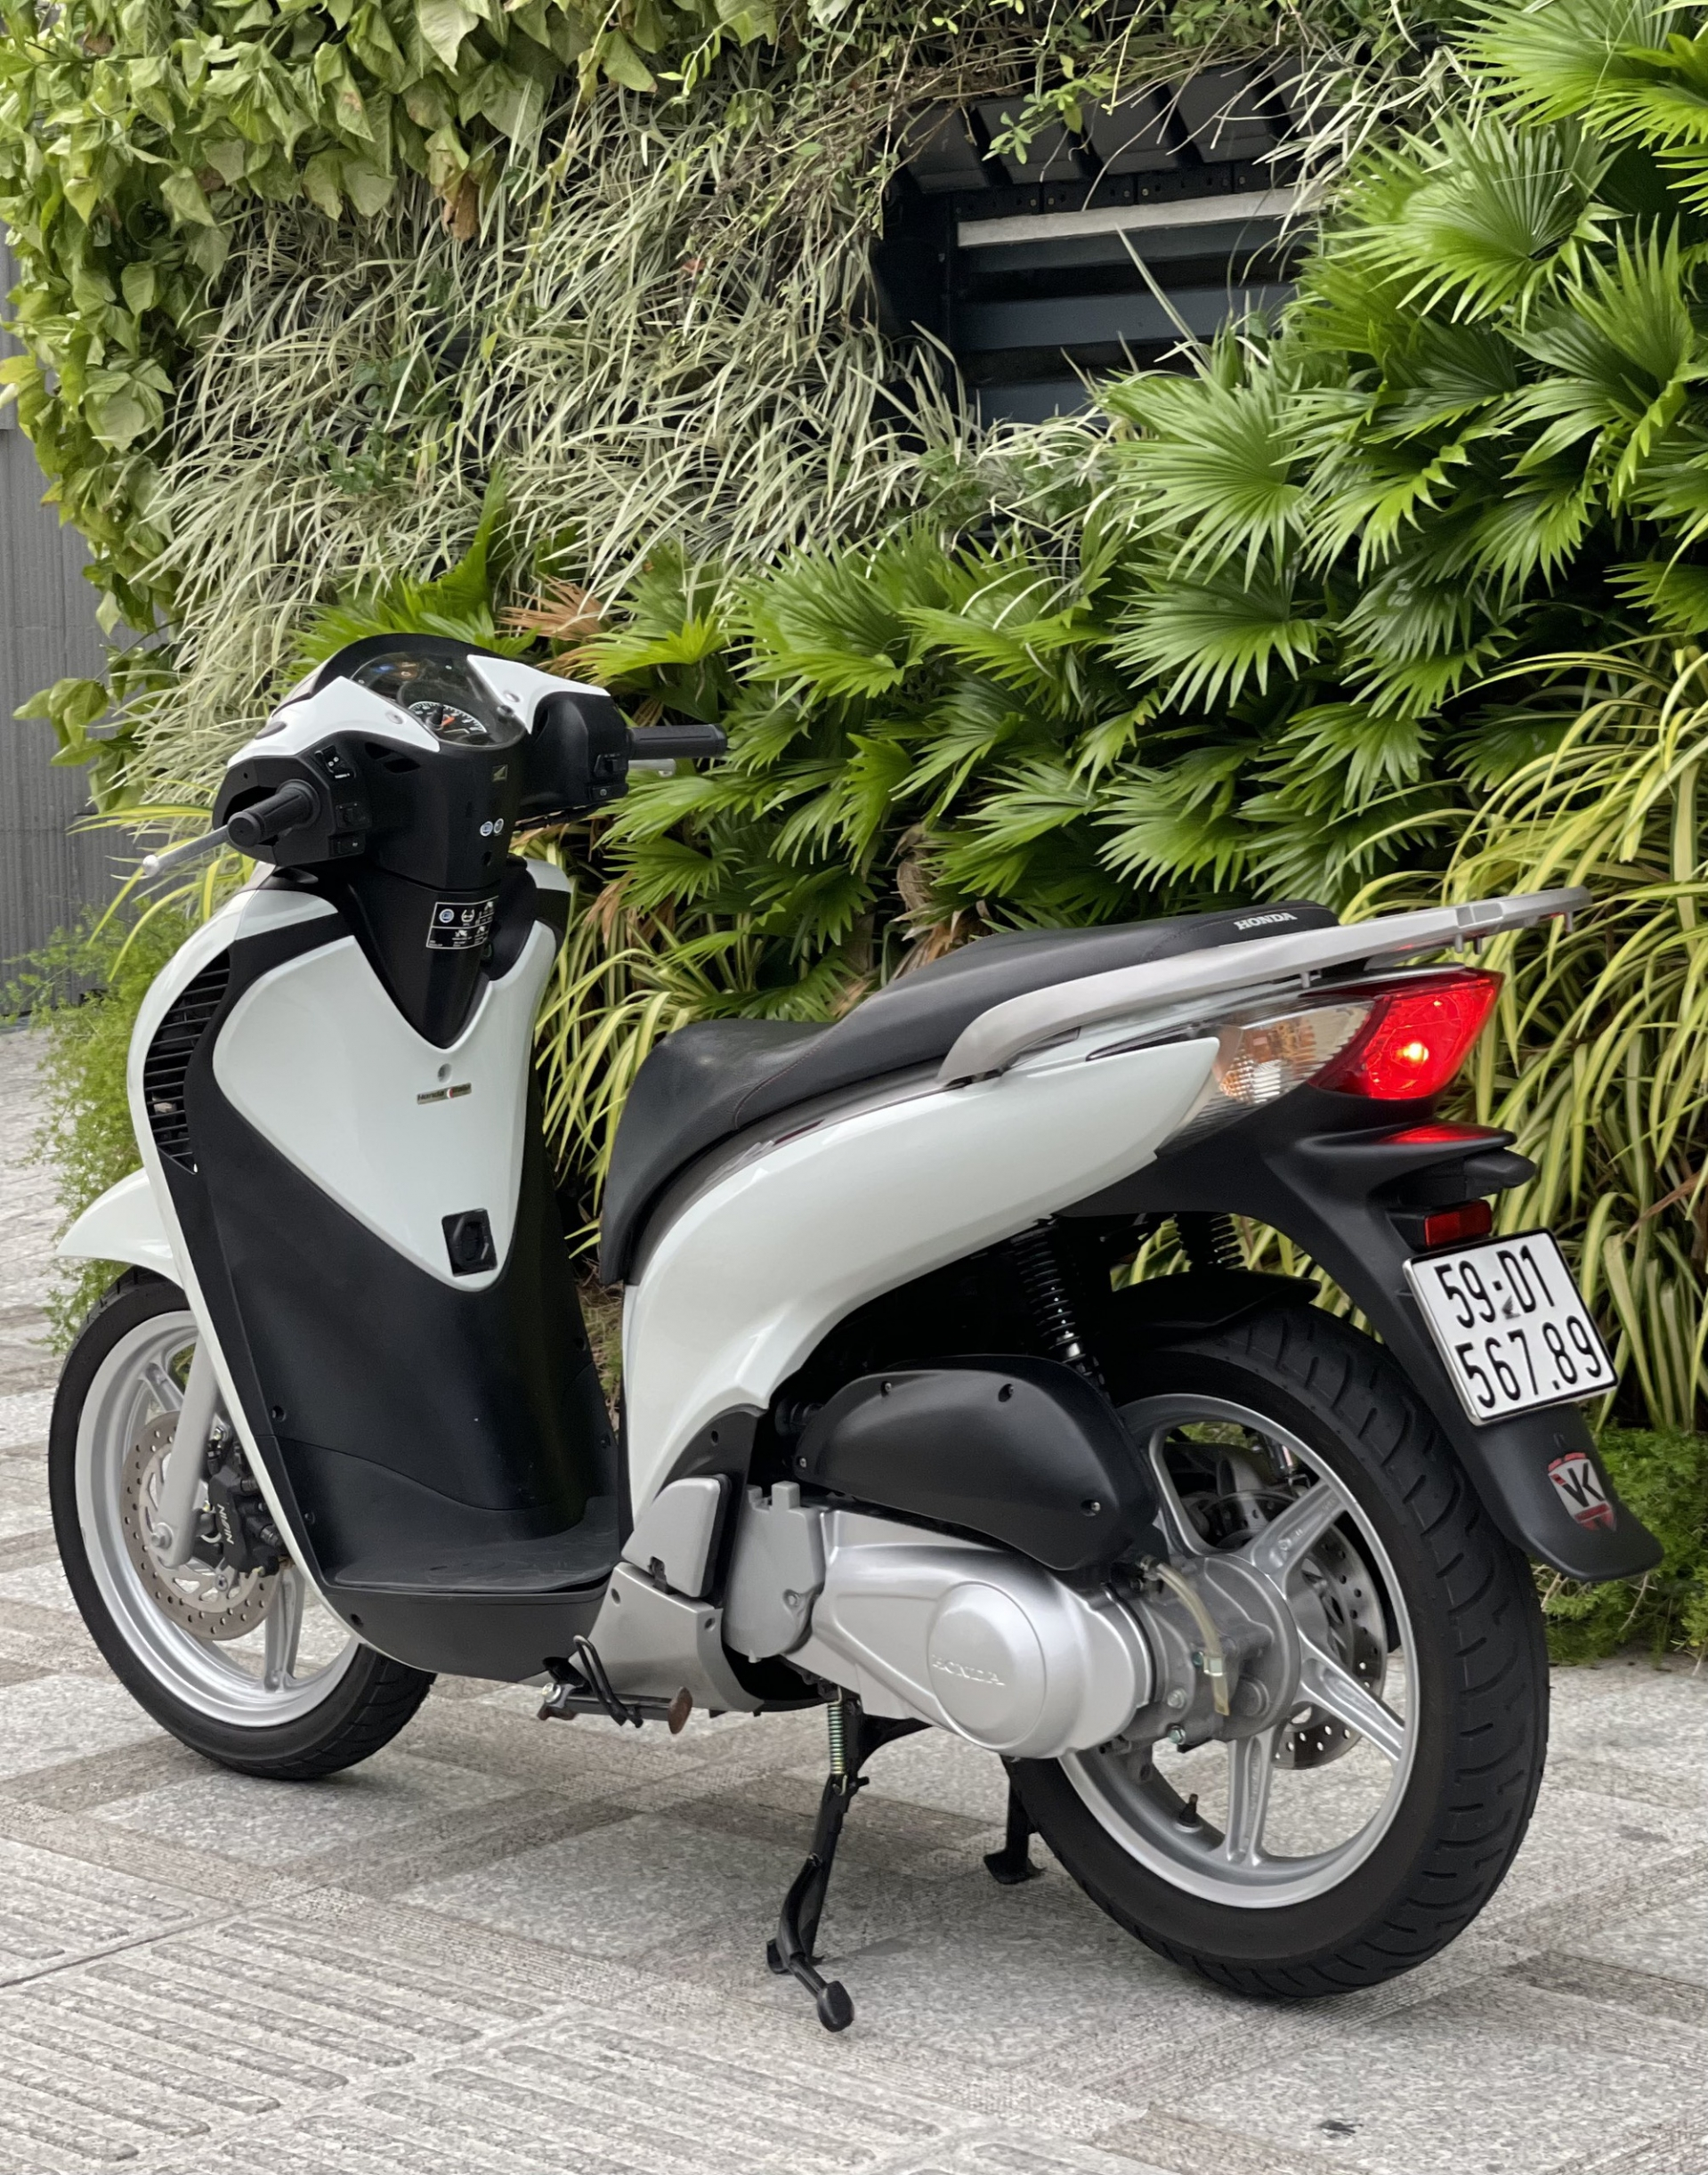 Old Honda SH 150i for sale for 1 billion, the car found a new owner after only 4 days 4